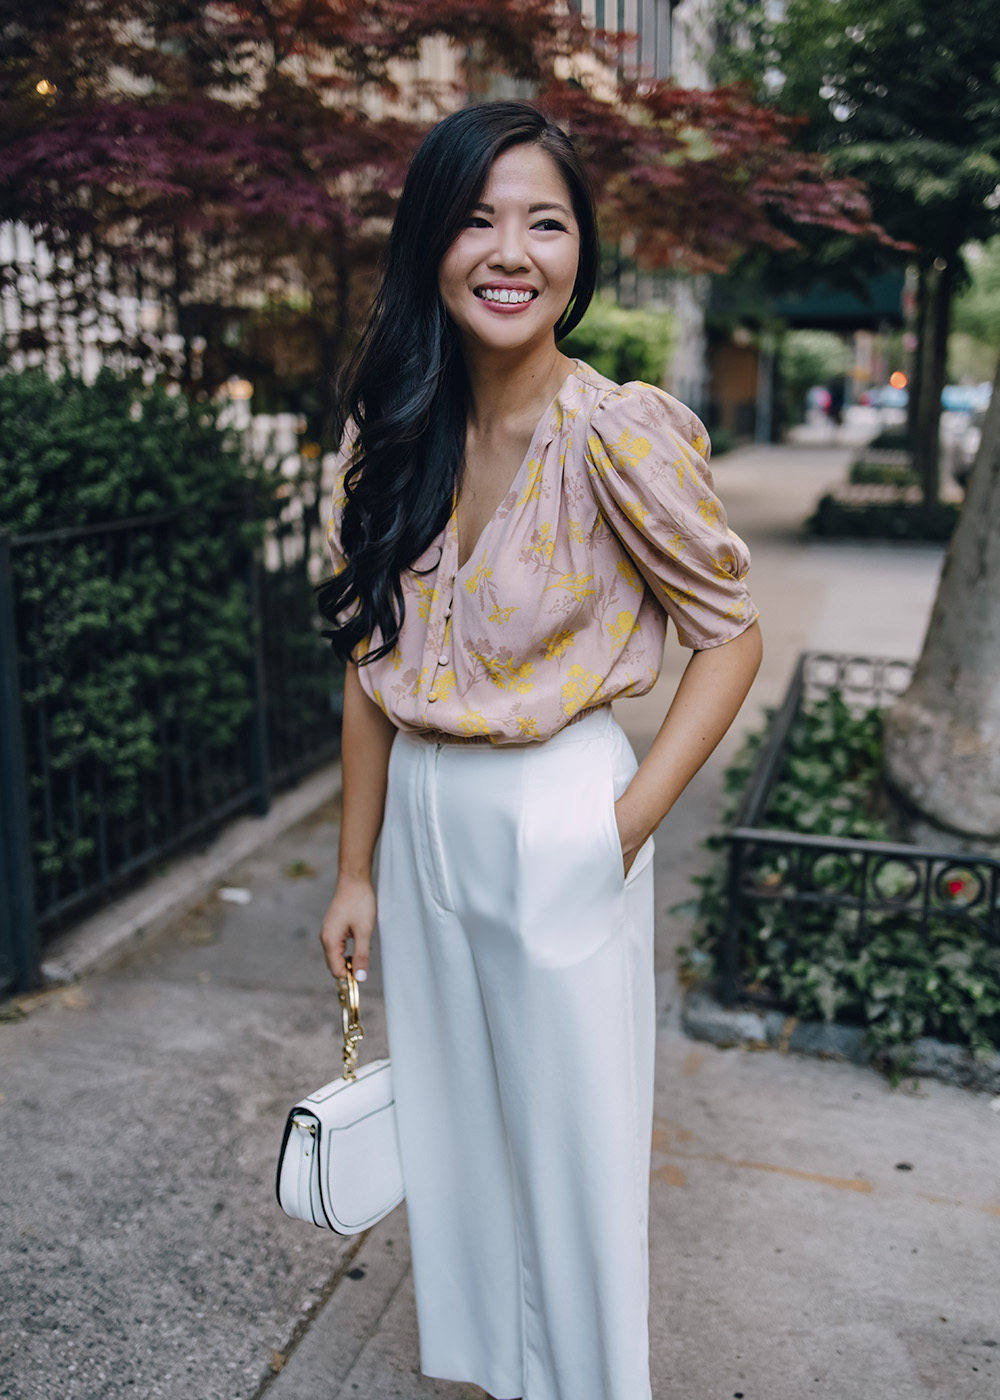 Spring Work Outfit for Women: Floral Top & White Wide Leg Pants